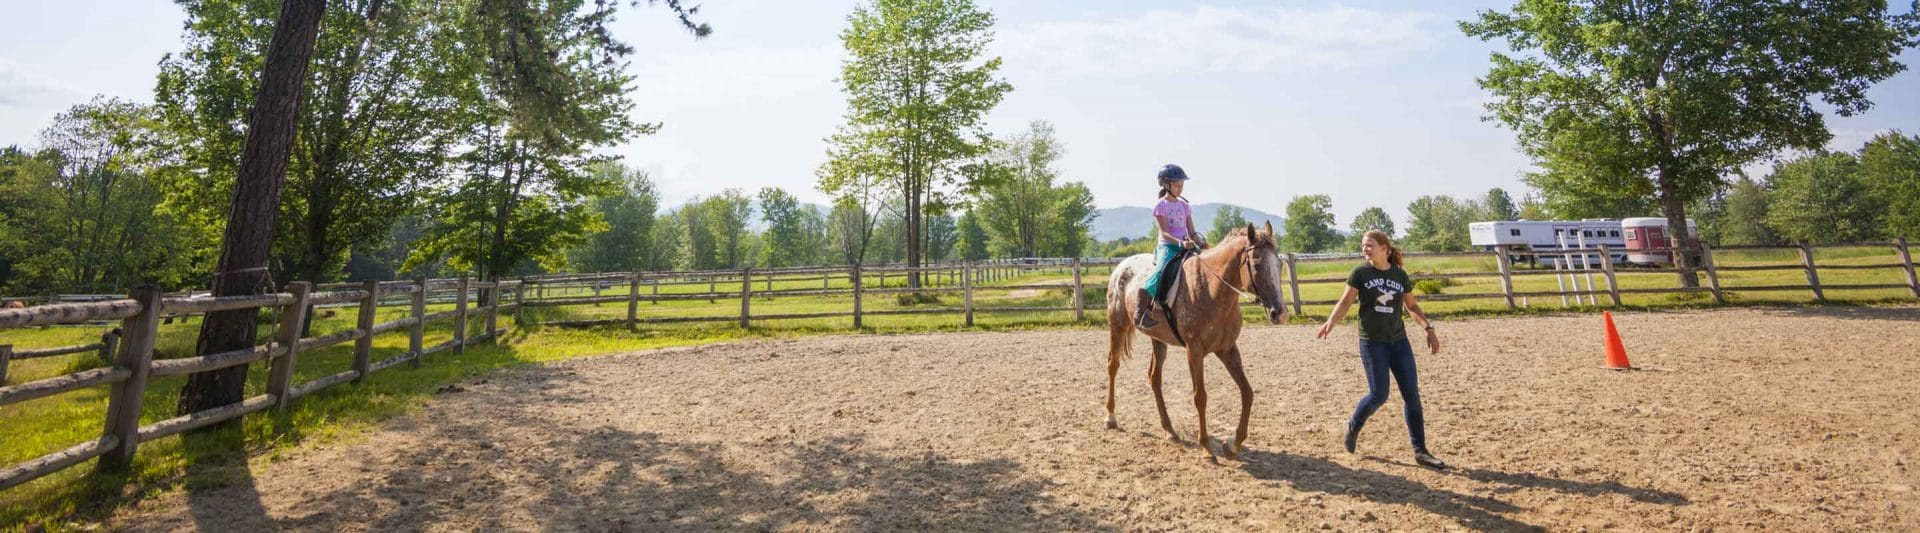 young girl rides a horse while an instructor leads them